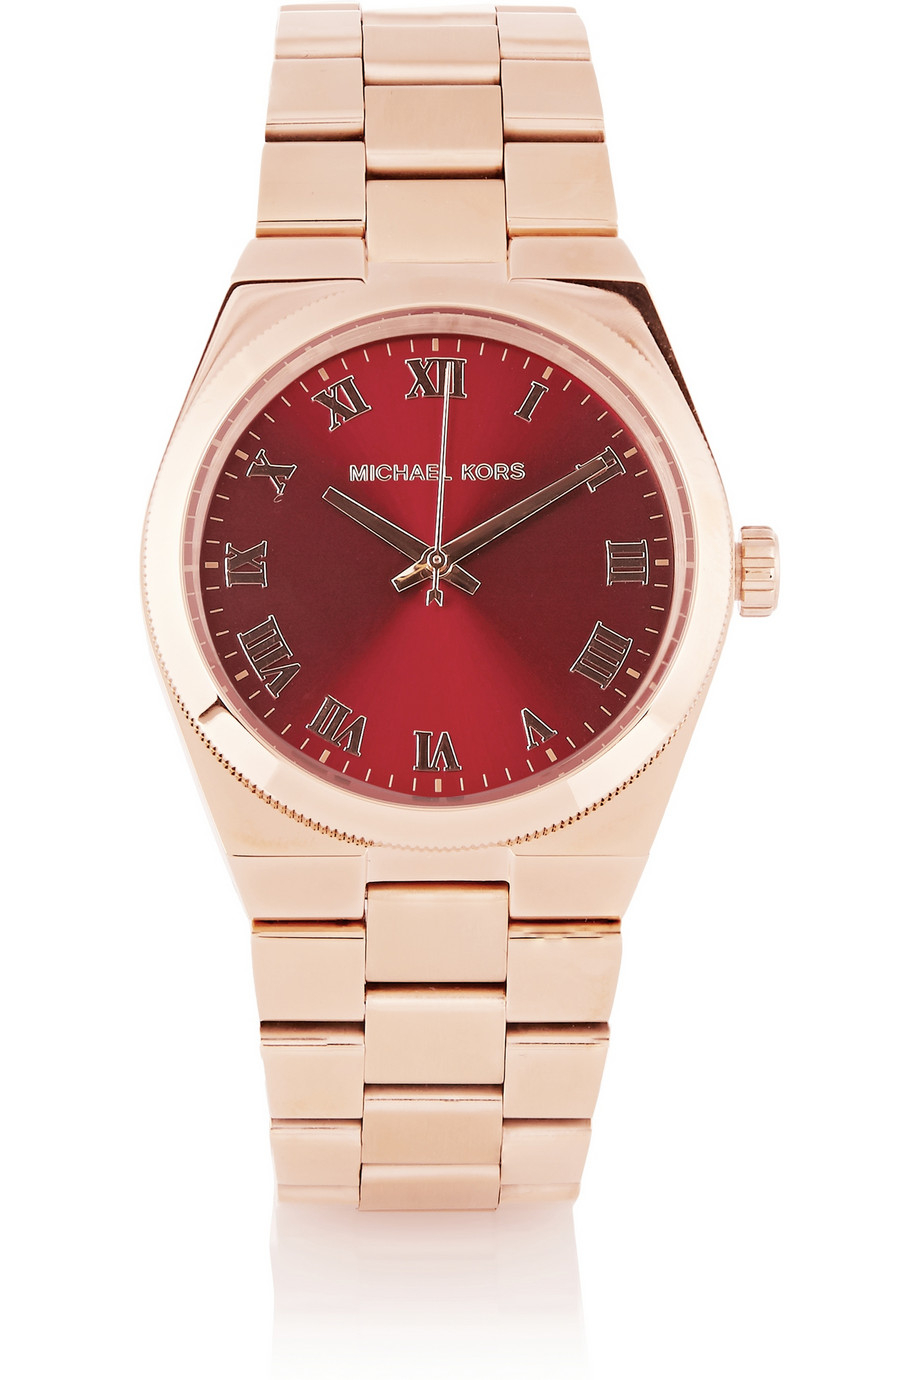 08f13abbe307 Lyst - Michael Kors Channing Rose Gold-Tone Watch in Metallic